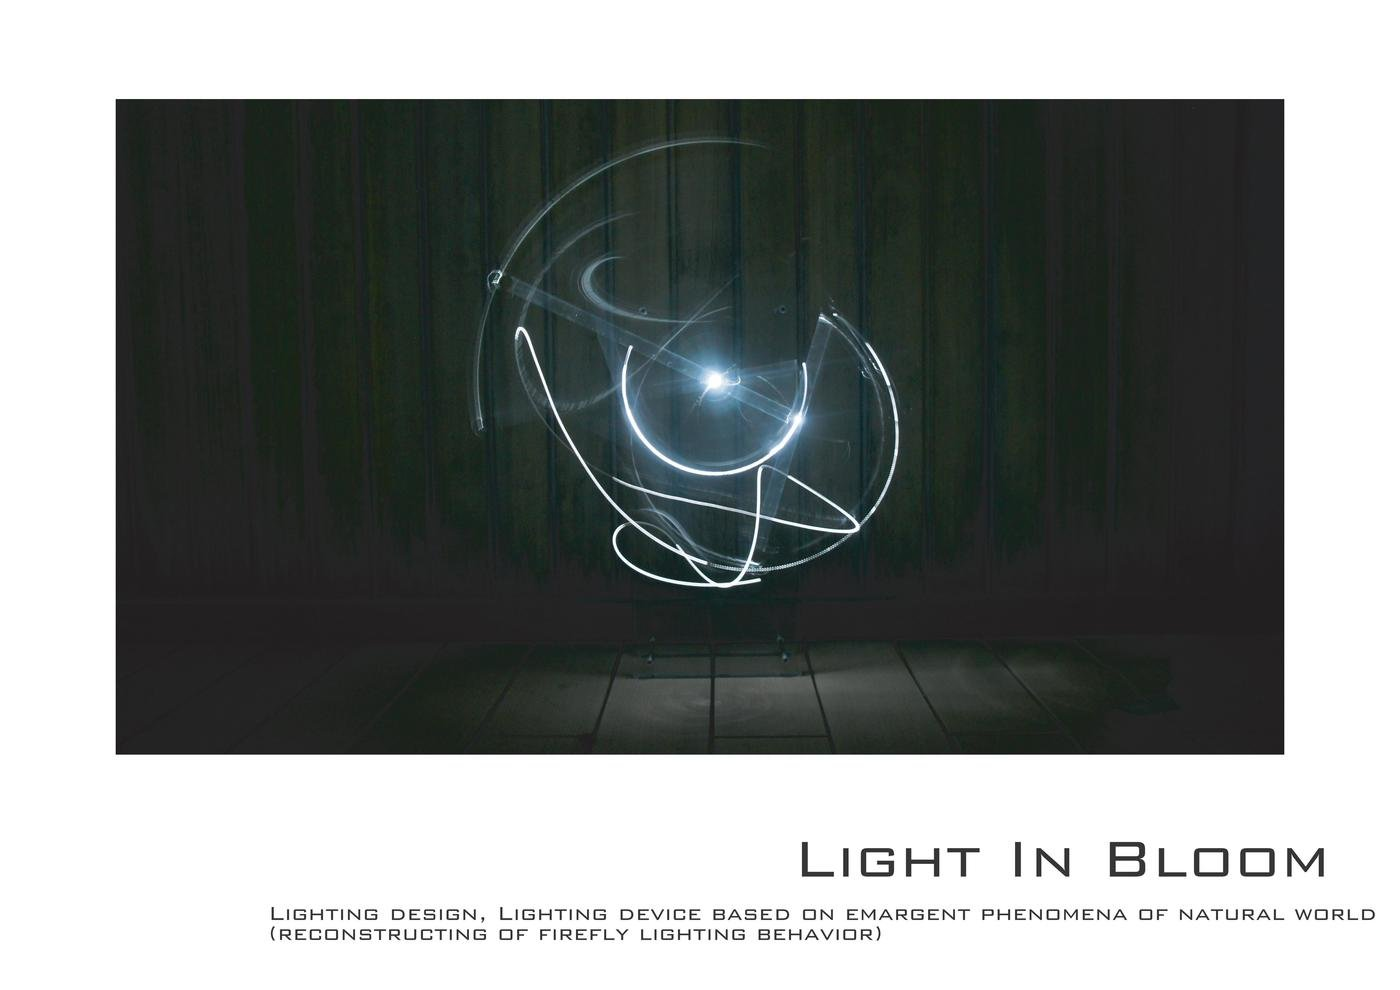 Light In Bloom イメージ 1